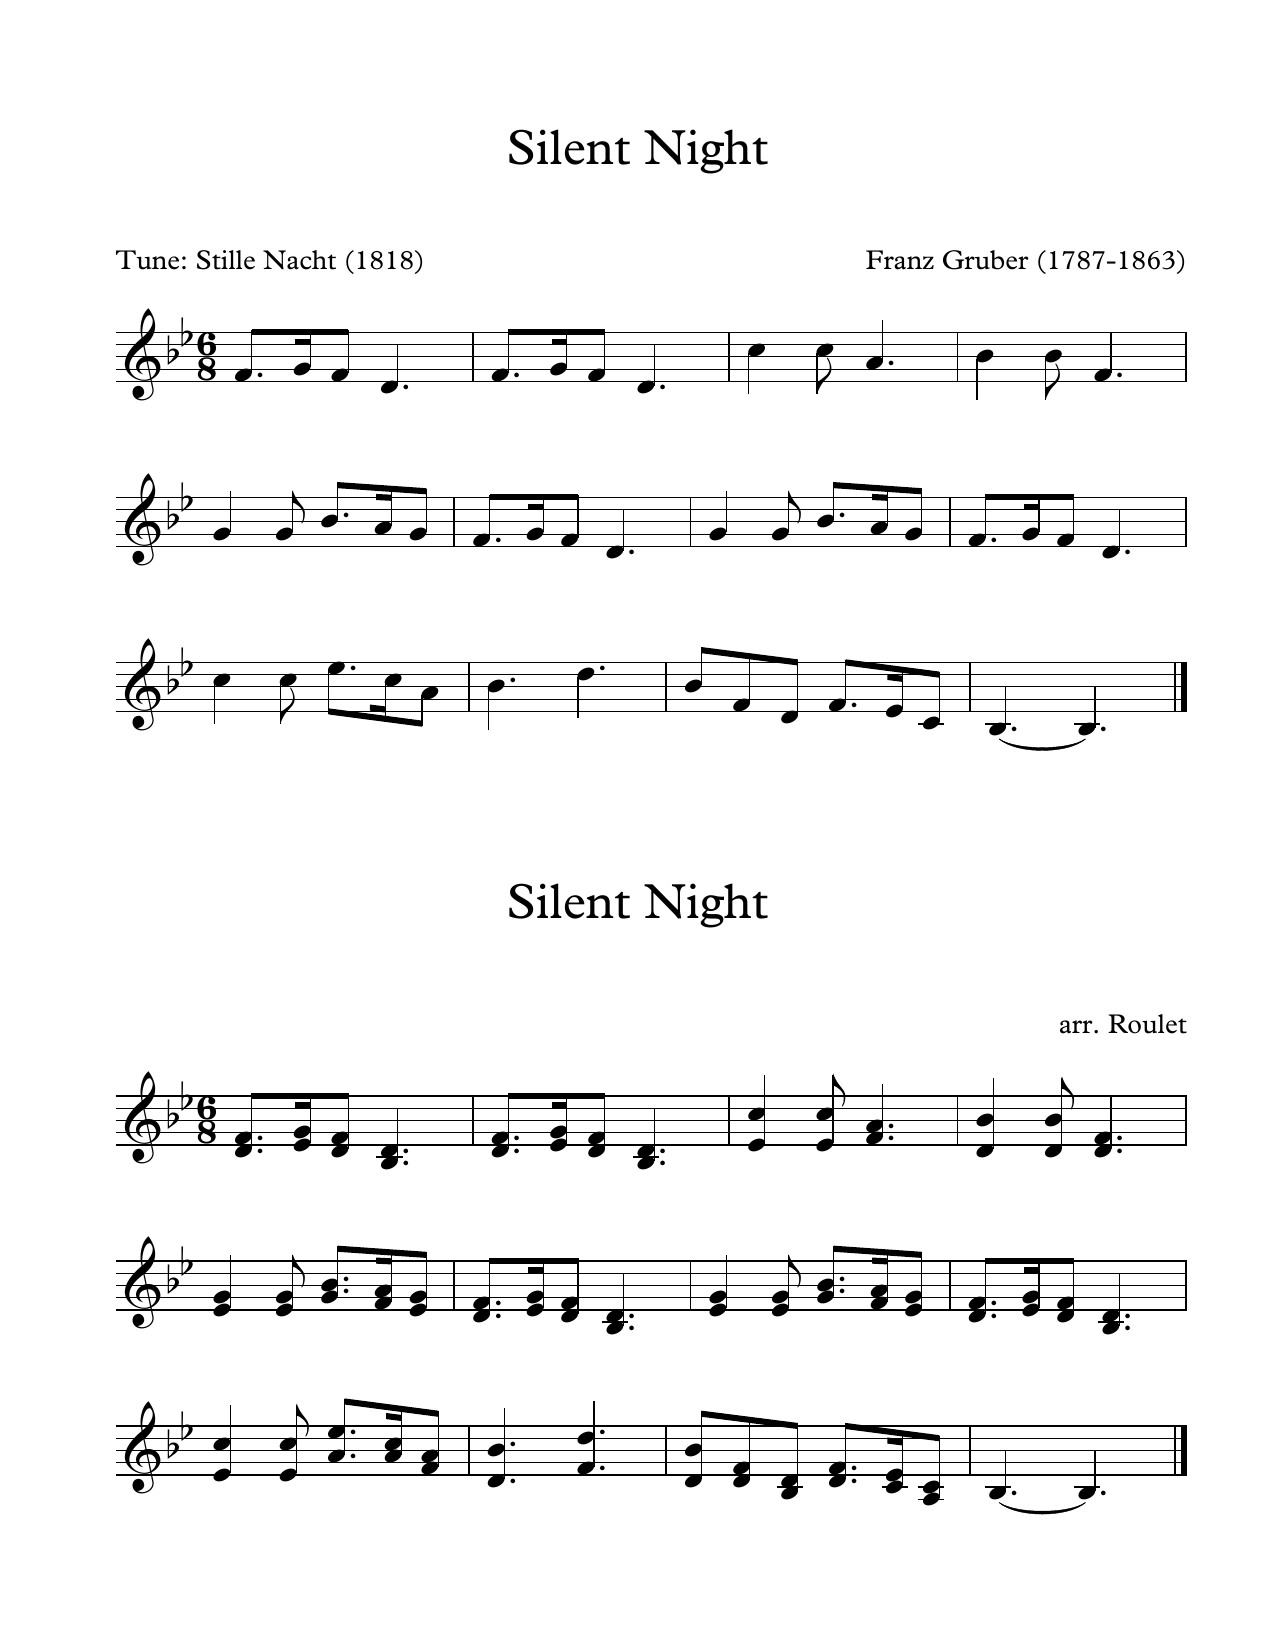 Franz Gruber Silent Night (arr. Patrick Roulet) sheet music notes and chords. Download Printable PDF.